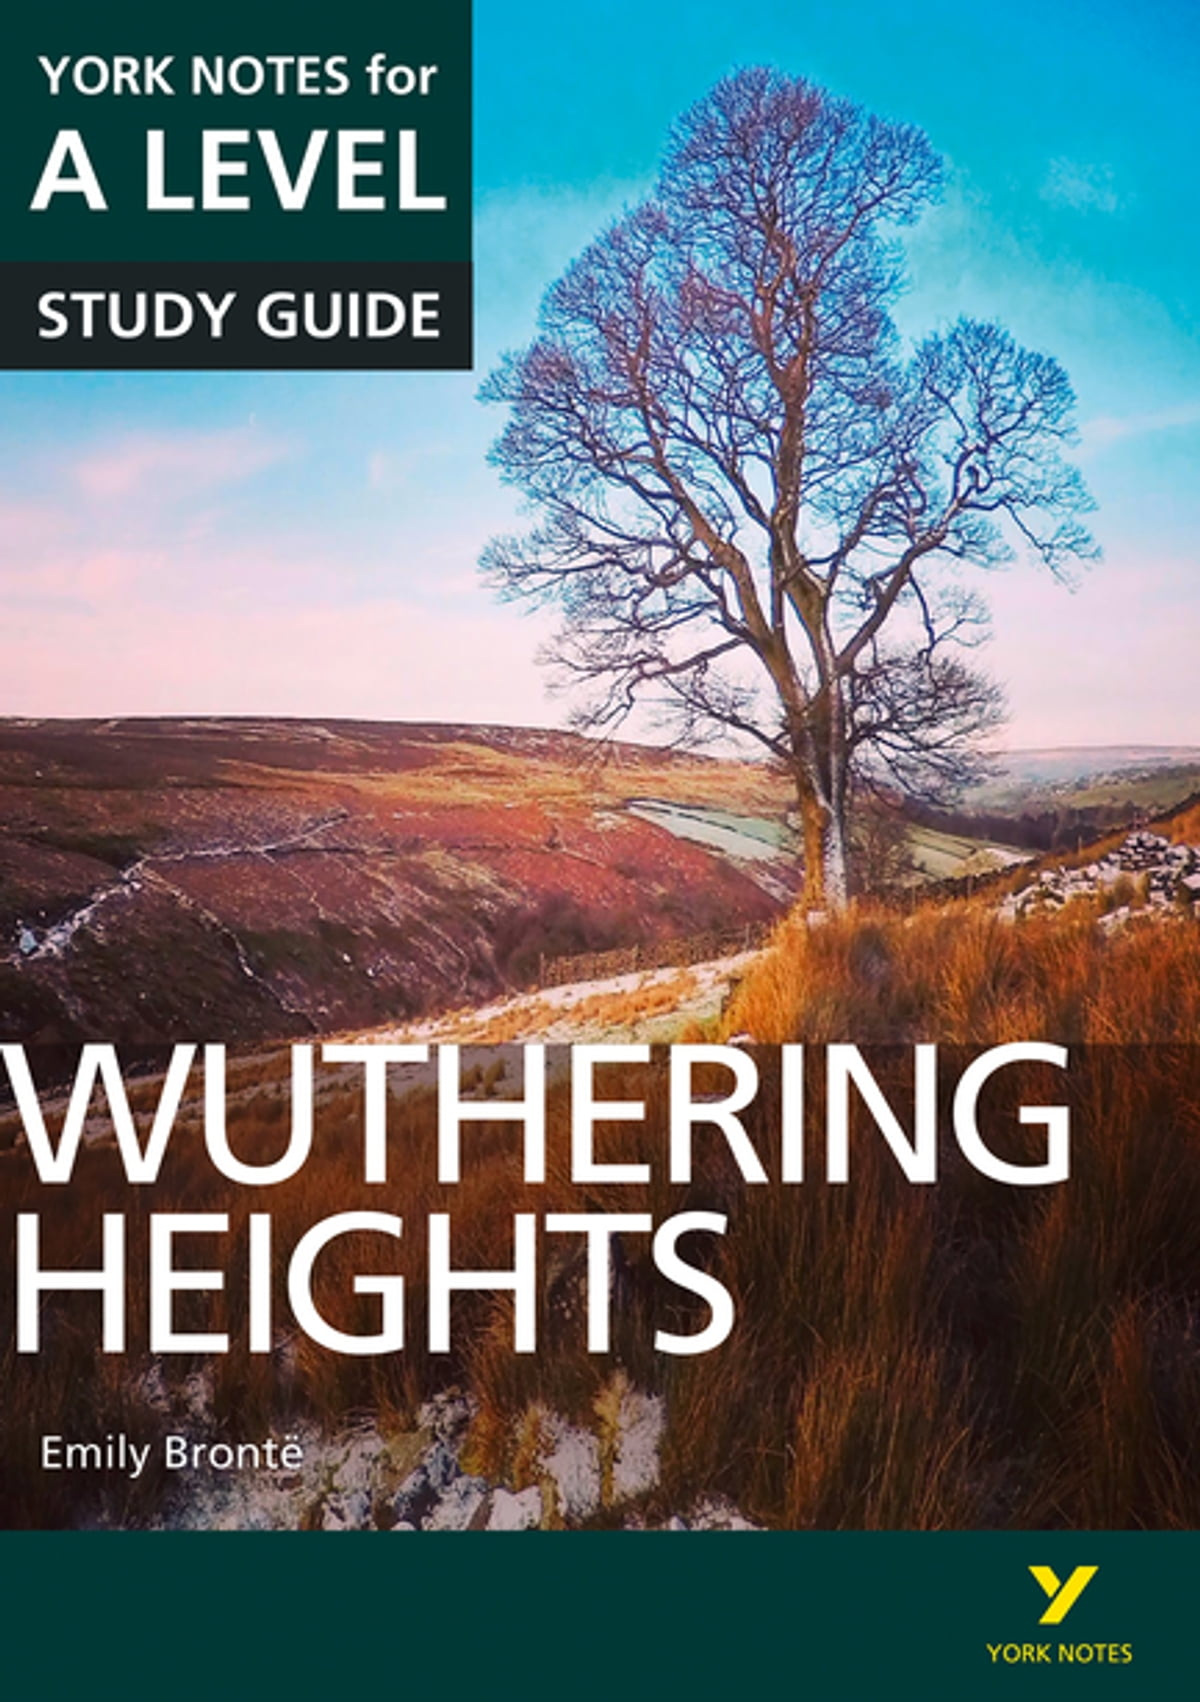 wuthering heights ebook pdf free download